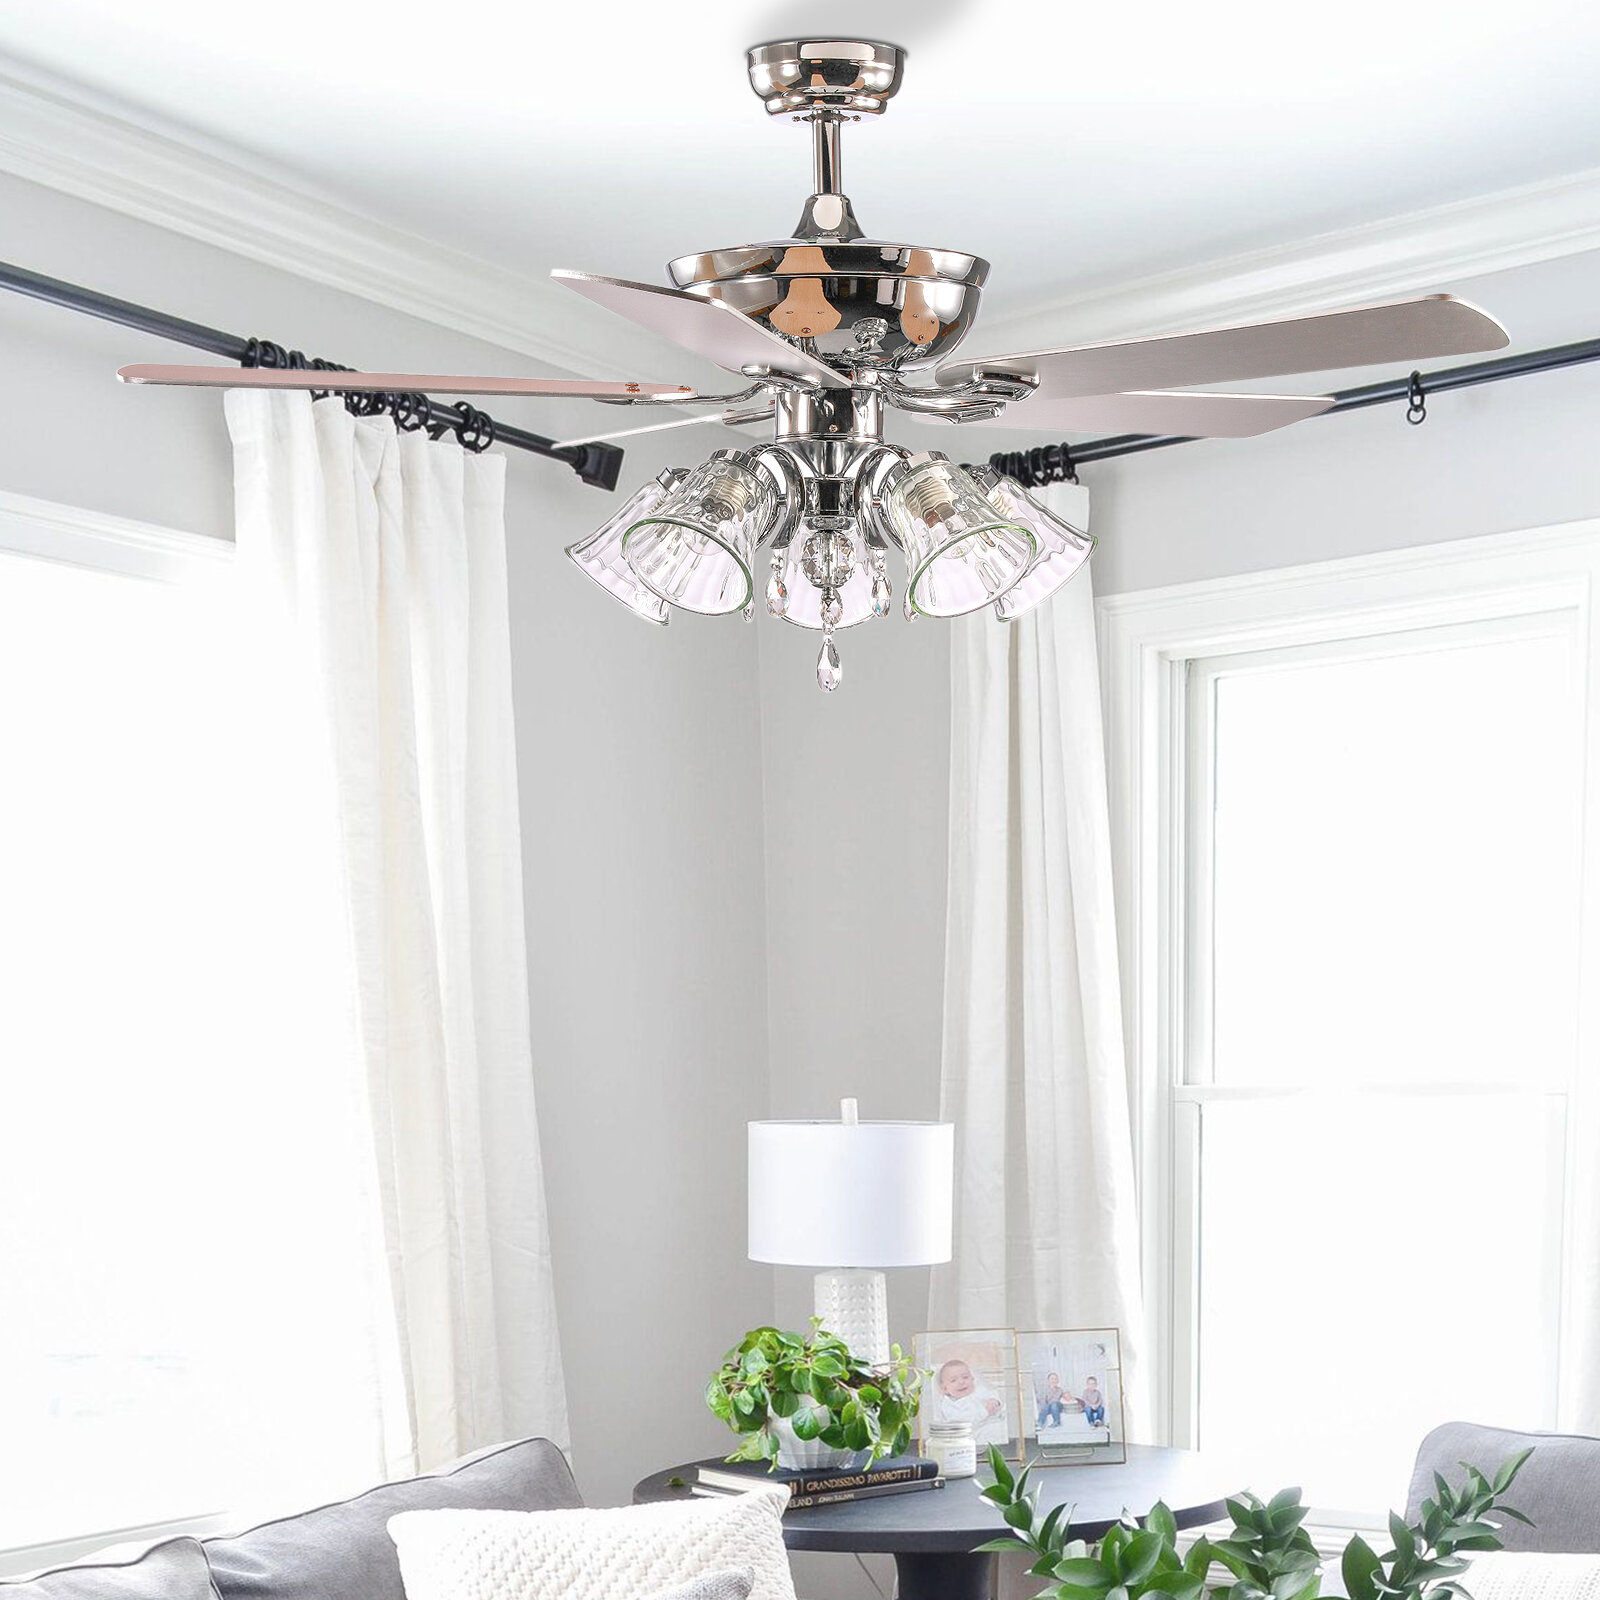 Rosdorf Park 52 Ann 5 Blade Chandelier Ceiling Fan With Remote Control And Light Kit Included Wayfair